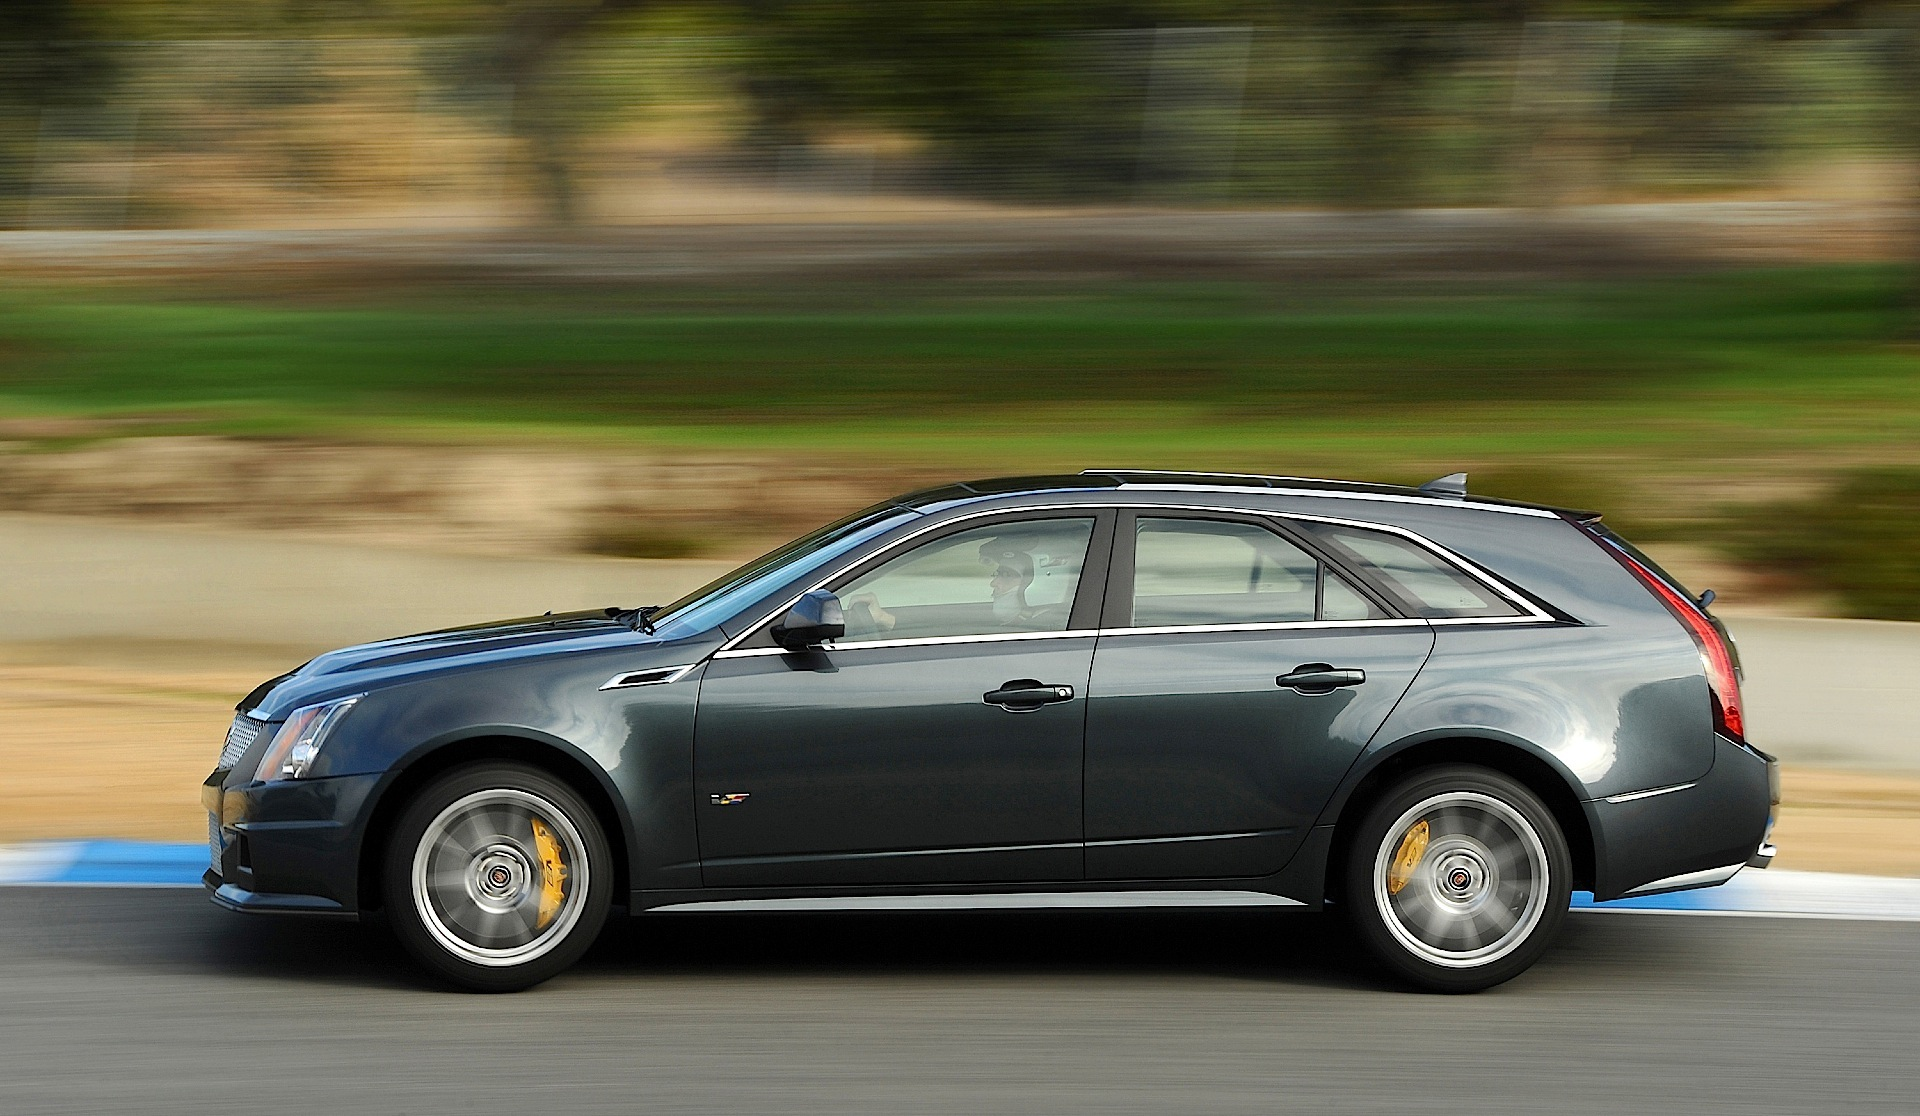 cadillac based cruze sale for news platform on ats was the report chevy almost